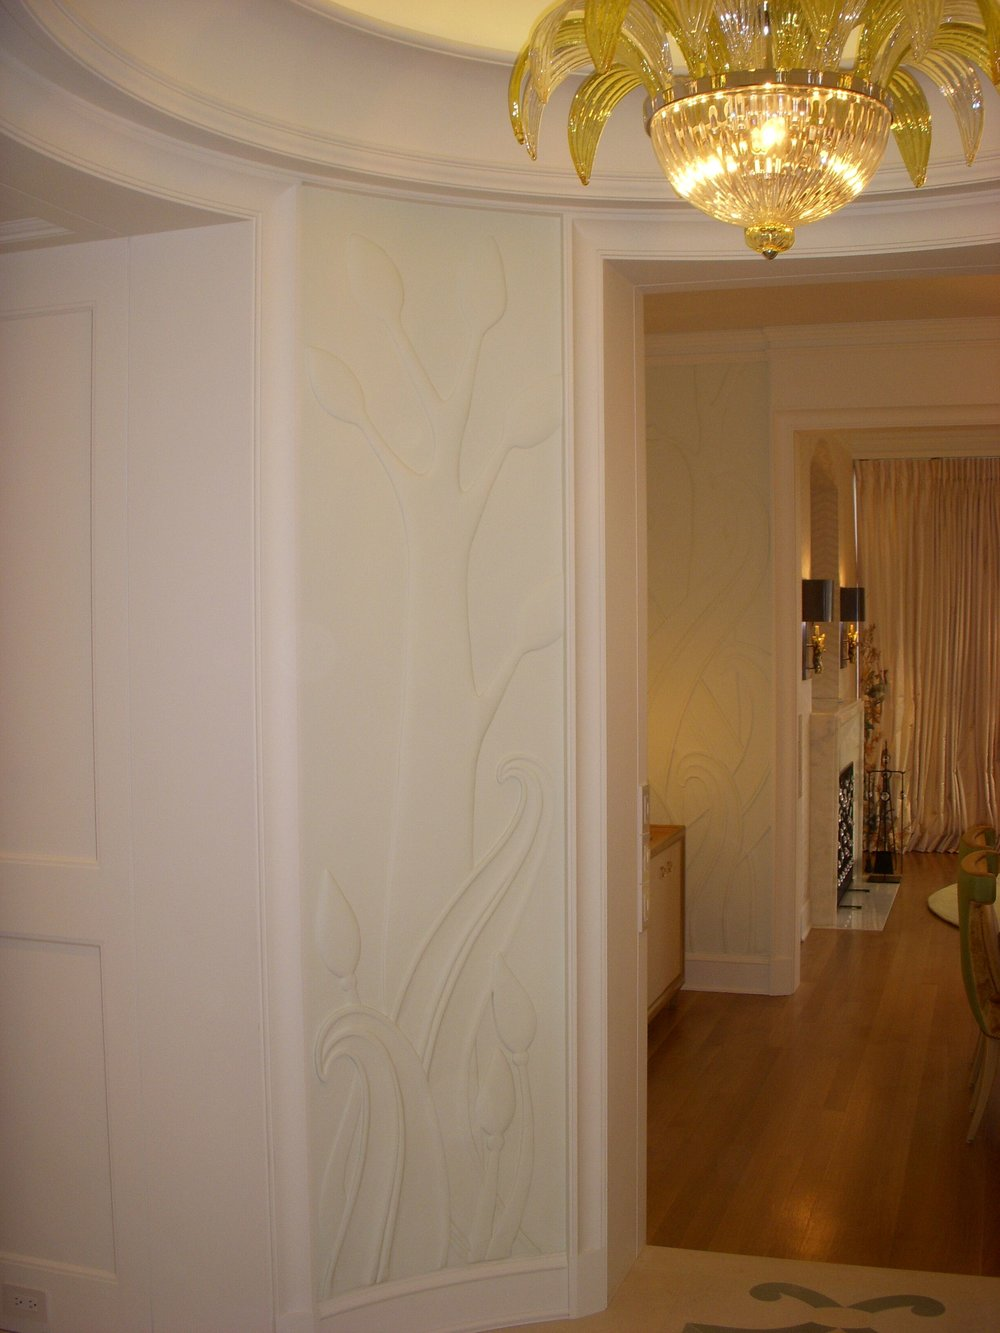 An ornamental bas relief wall finish, these panels cover the walls of many of the rooms in the home